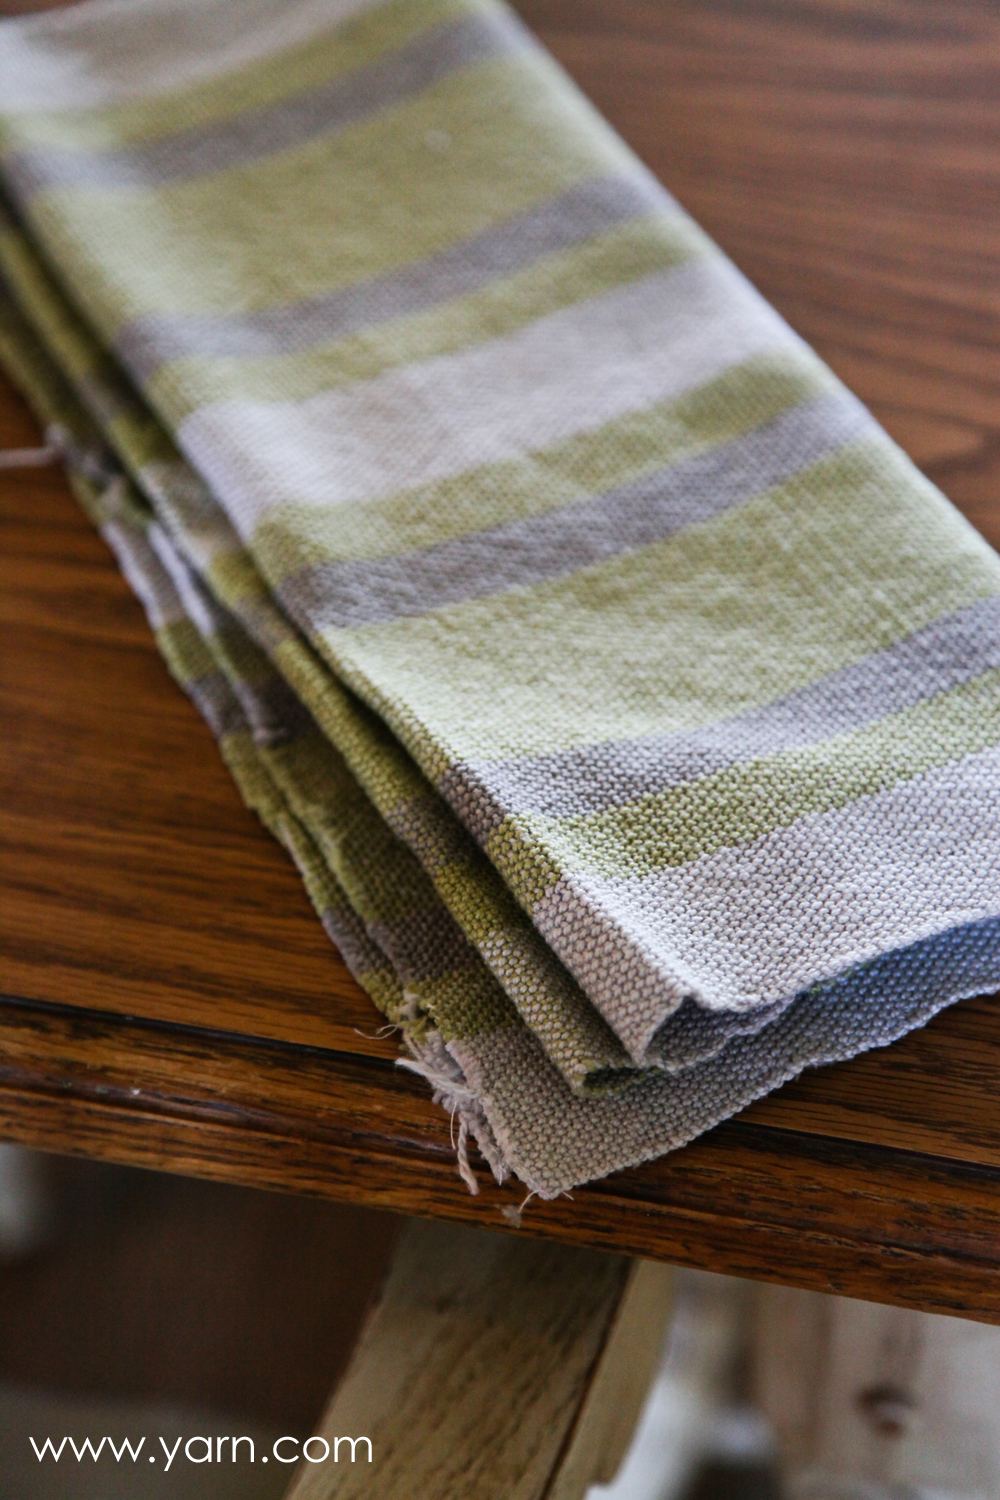 Dishtowels woven with Valley 5/2 Cotton.